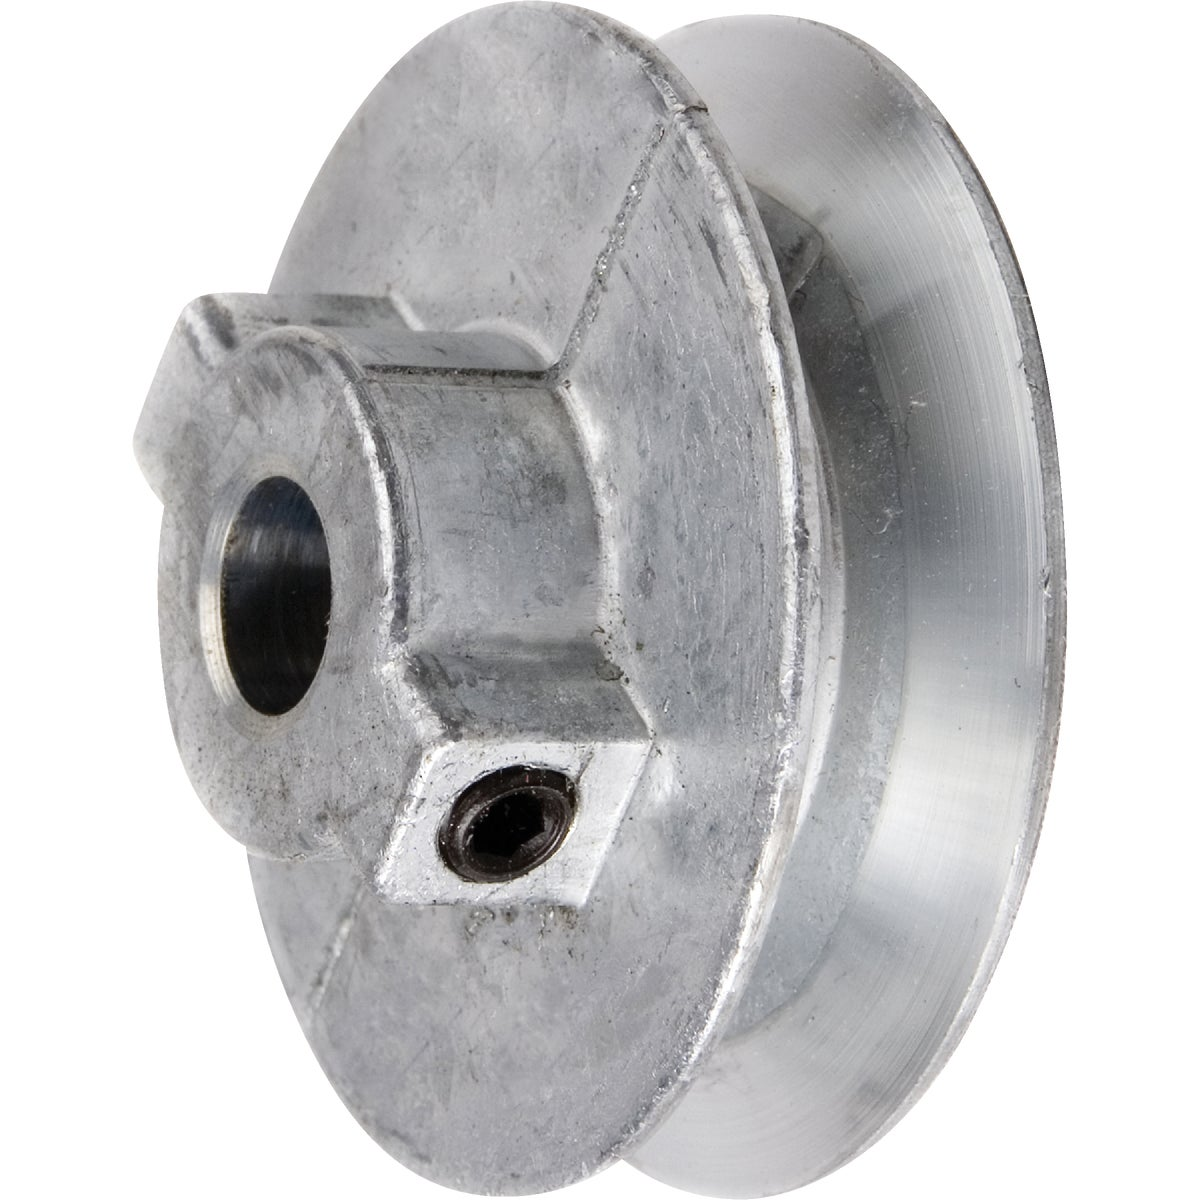 Chicago Die Casting 350A5 Pulley-3-1/2X1/2 PULLEY at Sears.com